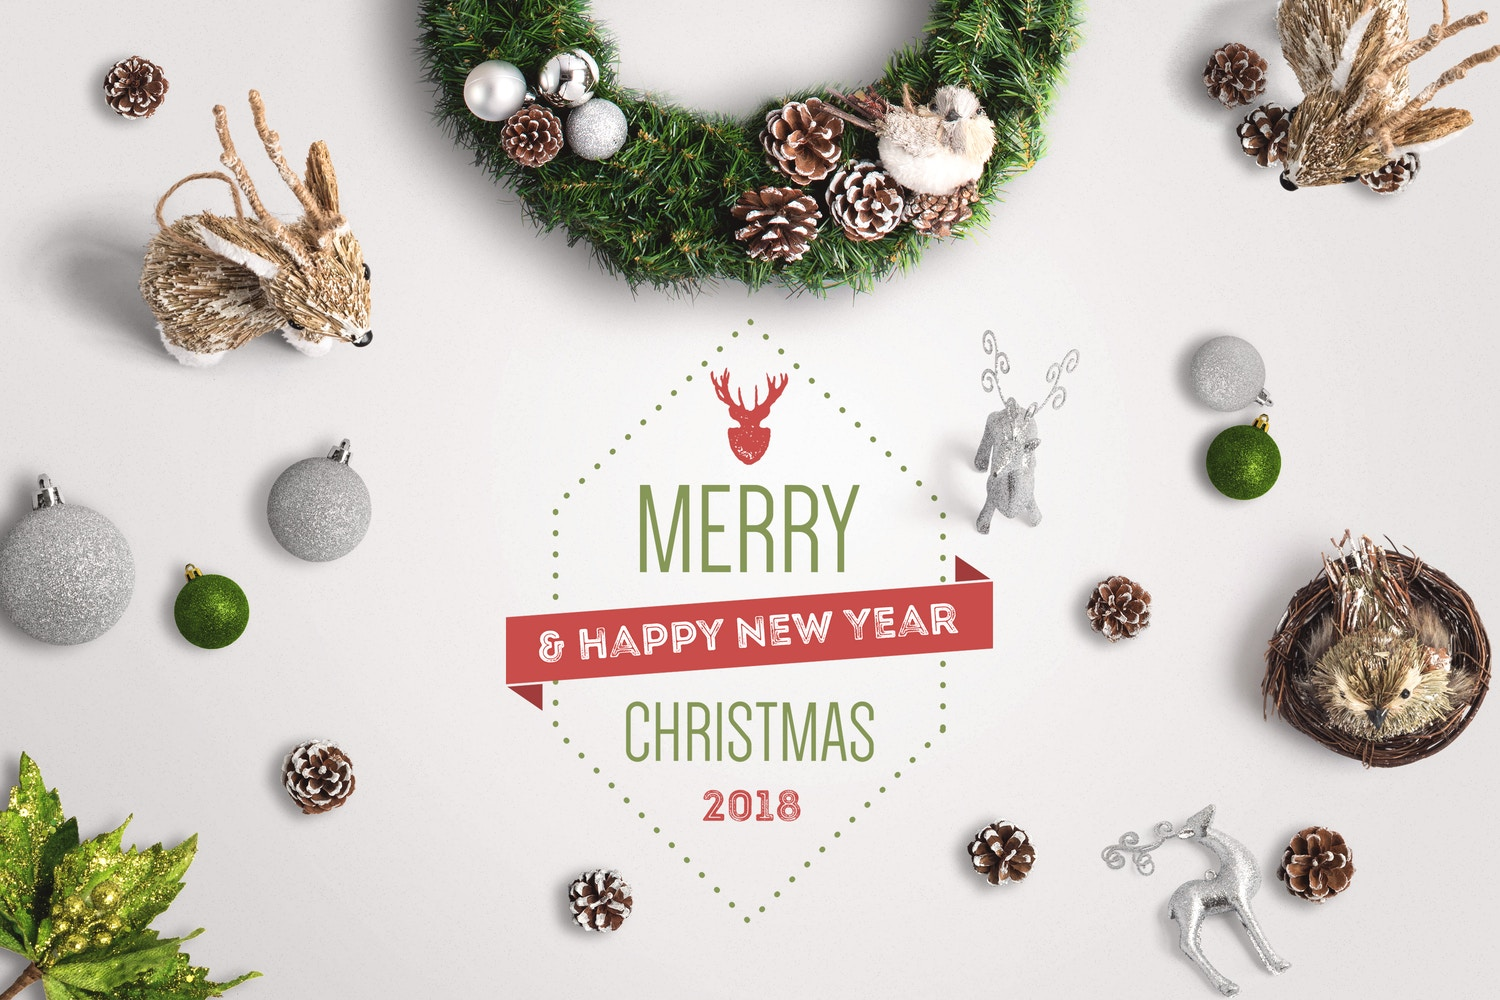 Christmas Header And Hero Scene Mockup 04 por Original Mockups en Original Mockups